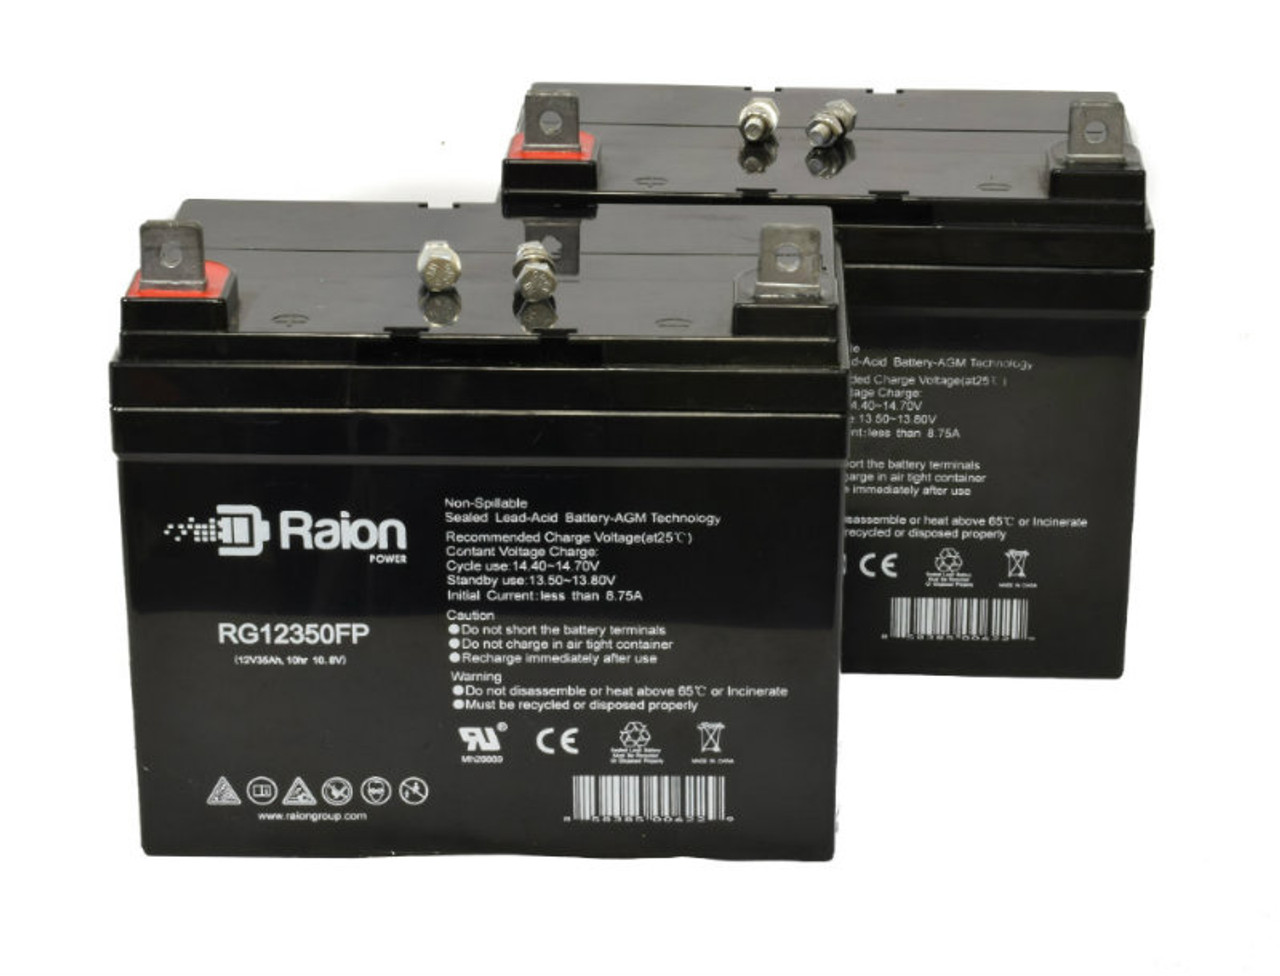 Raion Power RG12350FP Replacement Wheelchair Battery For Electric Mobility Rascal 265LE Candy Apple (2 Pack)